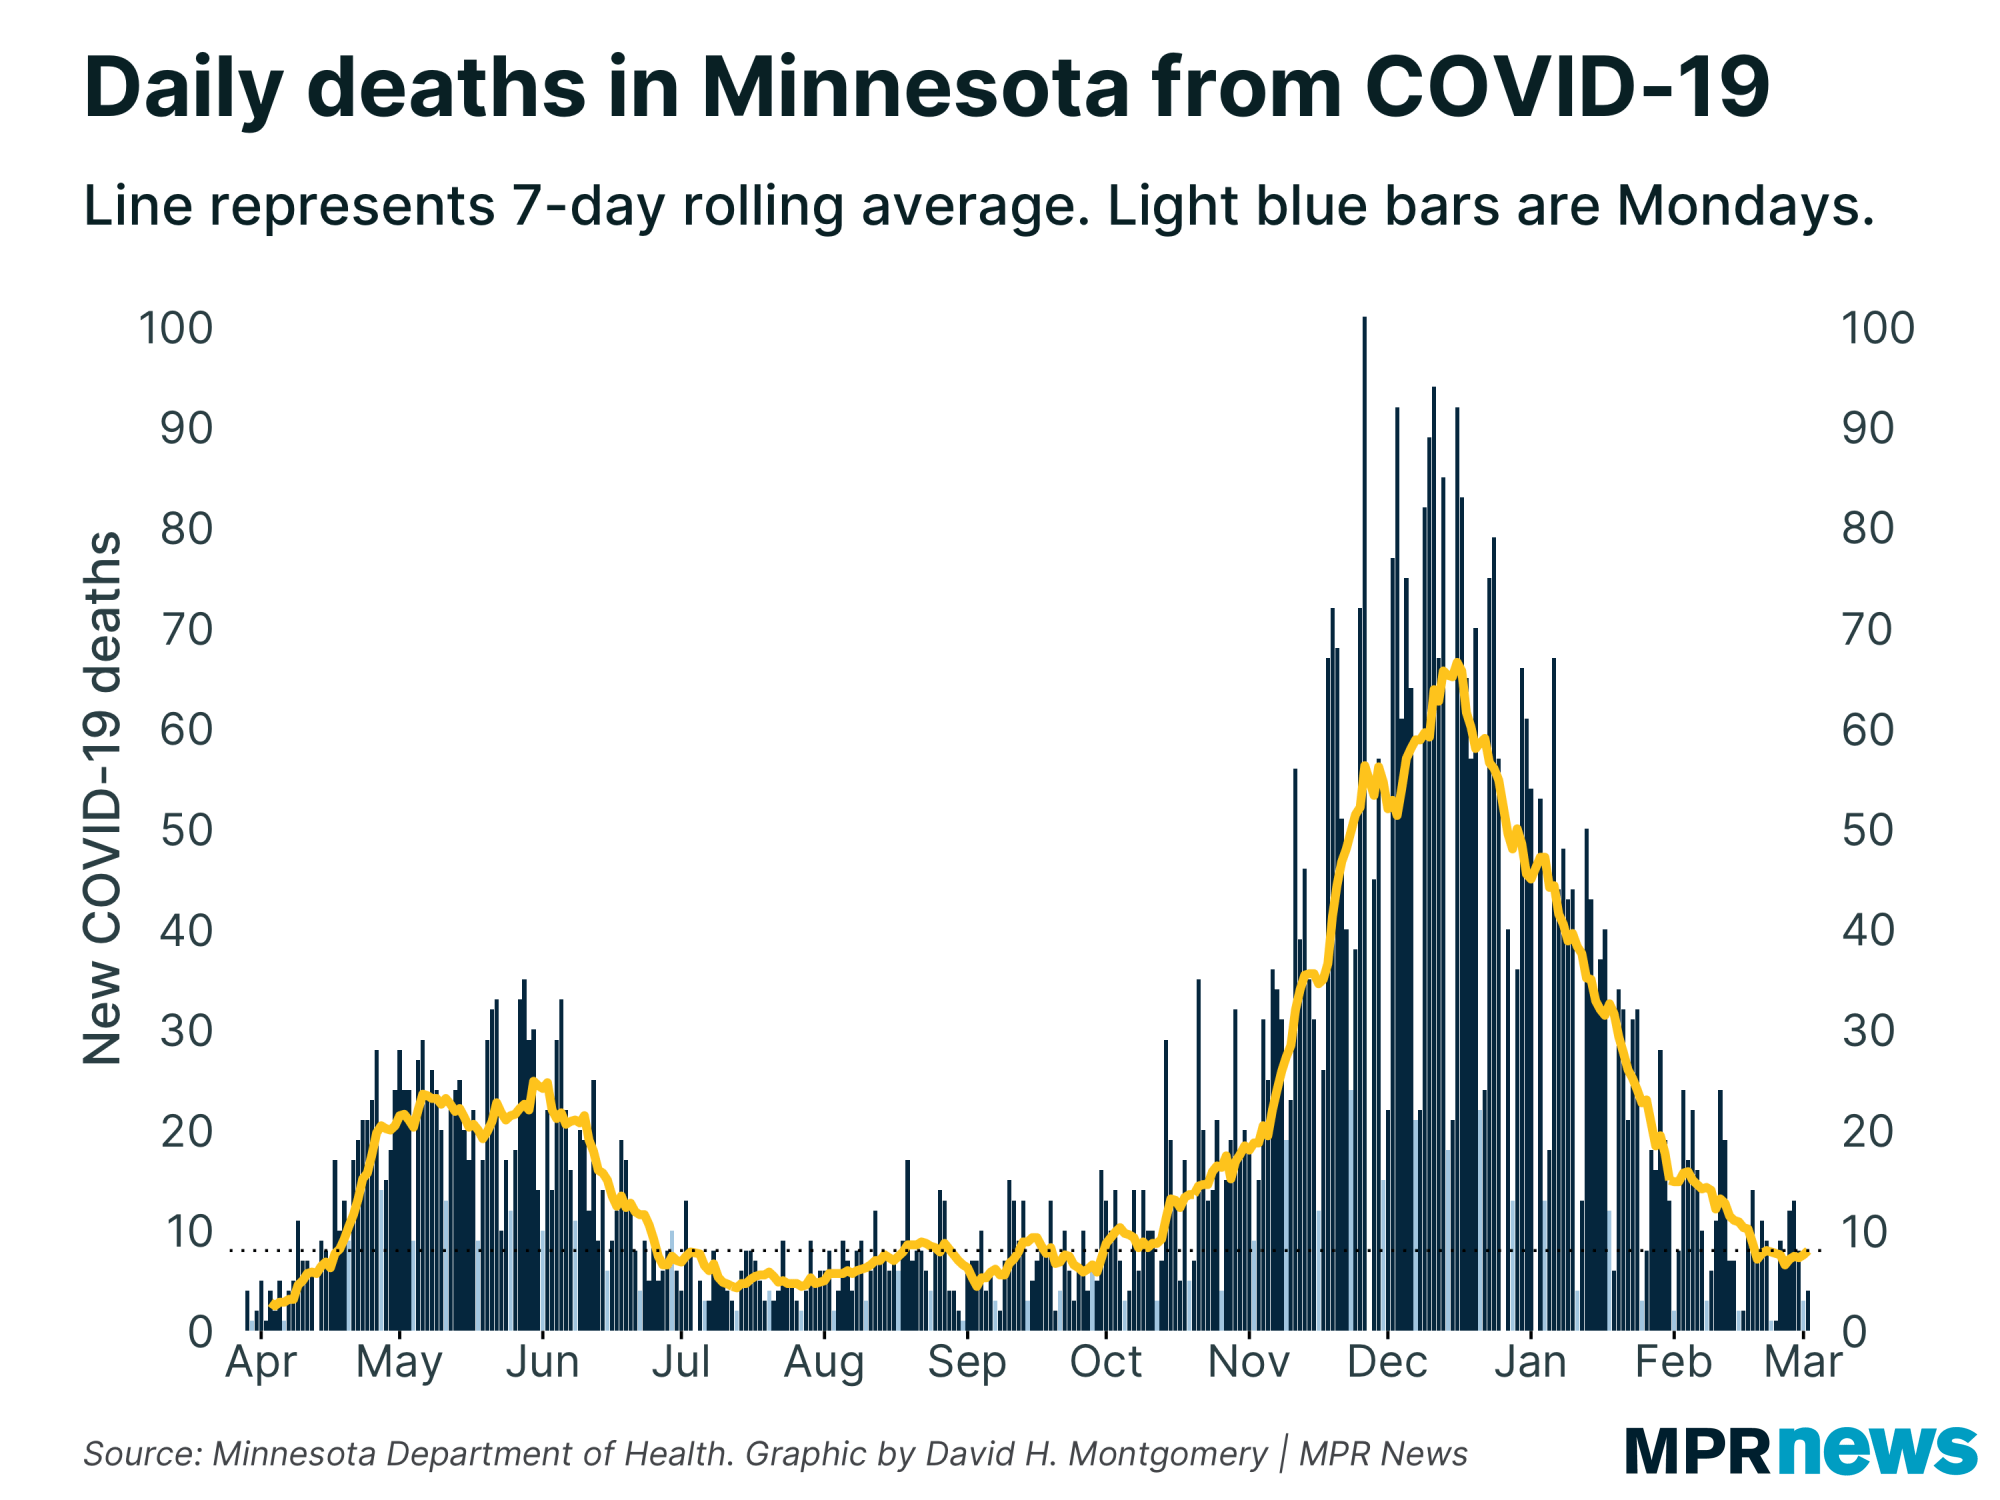 New COVID-19-Related Deaths Reported in Minnesota Every Day